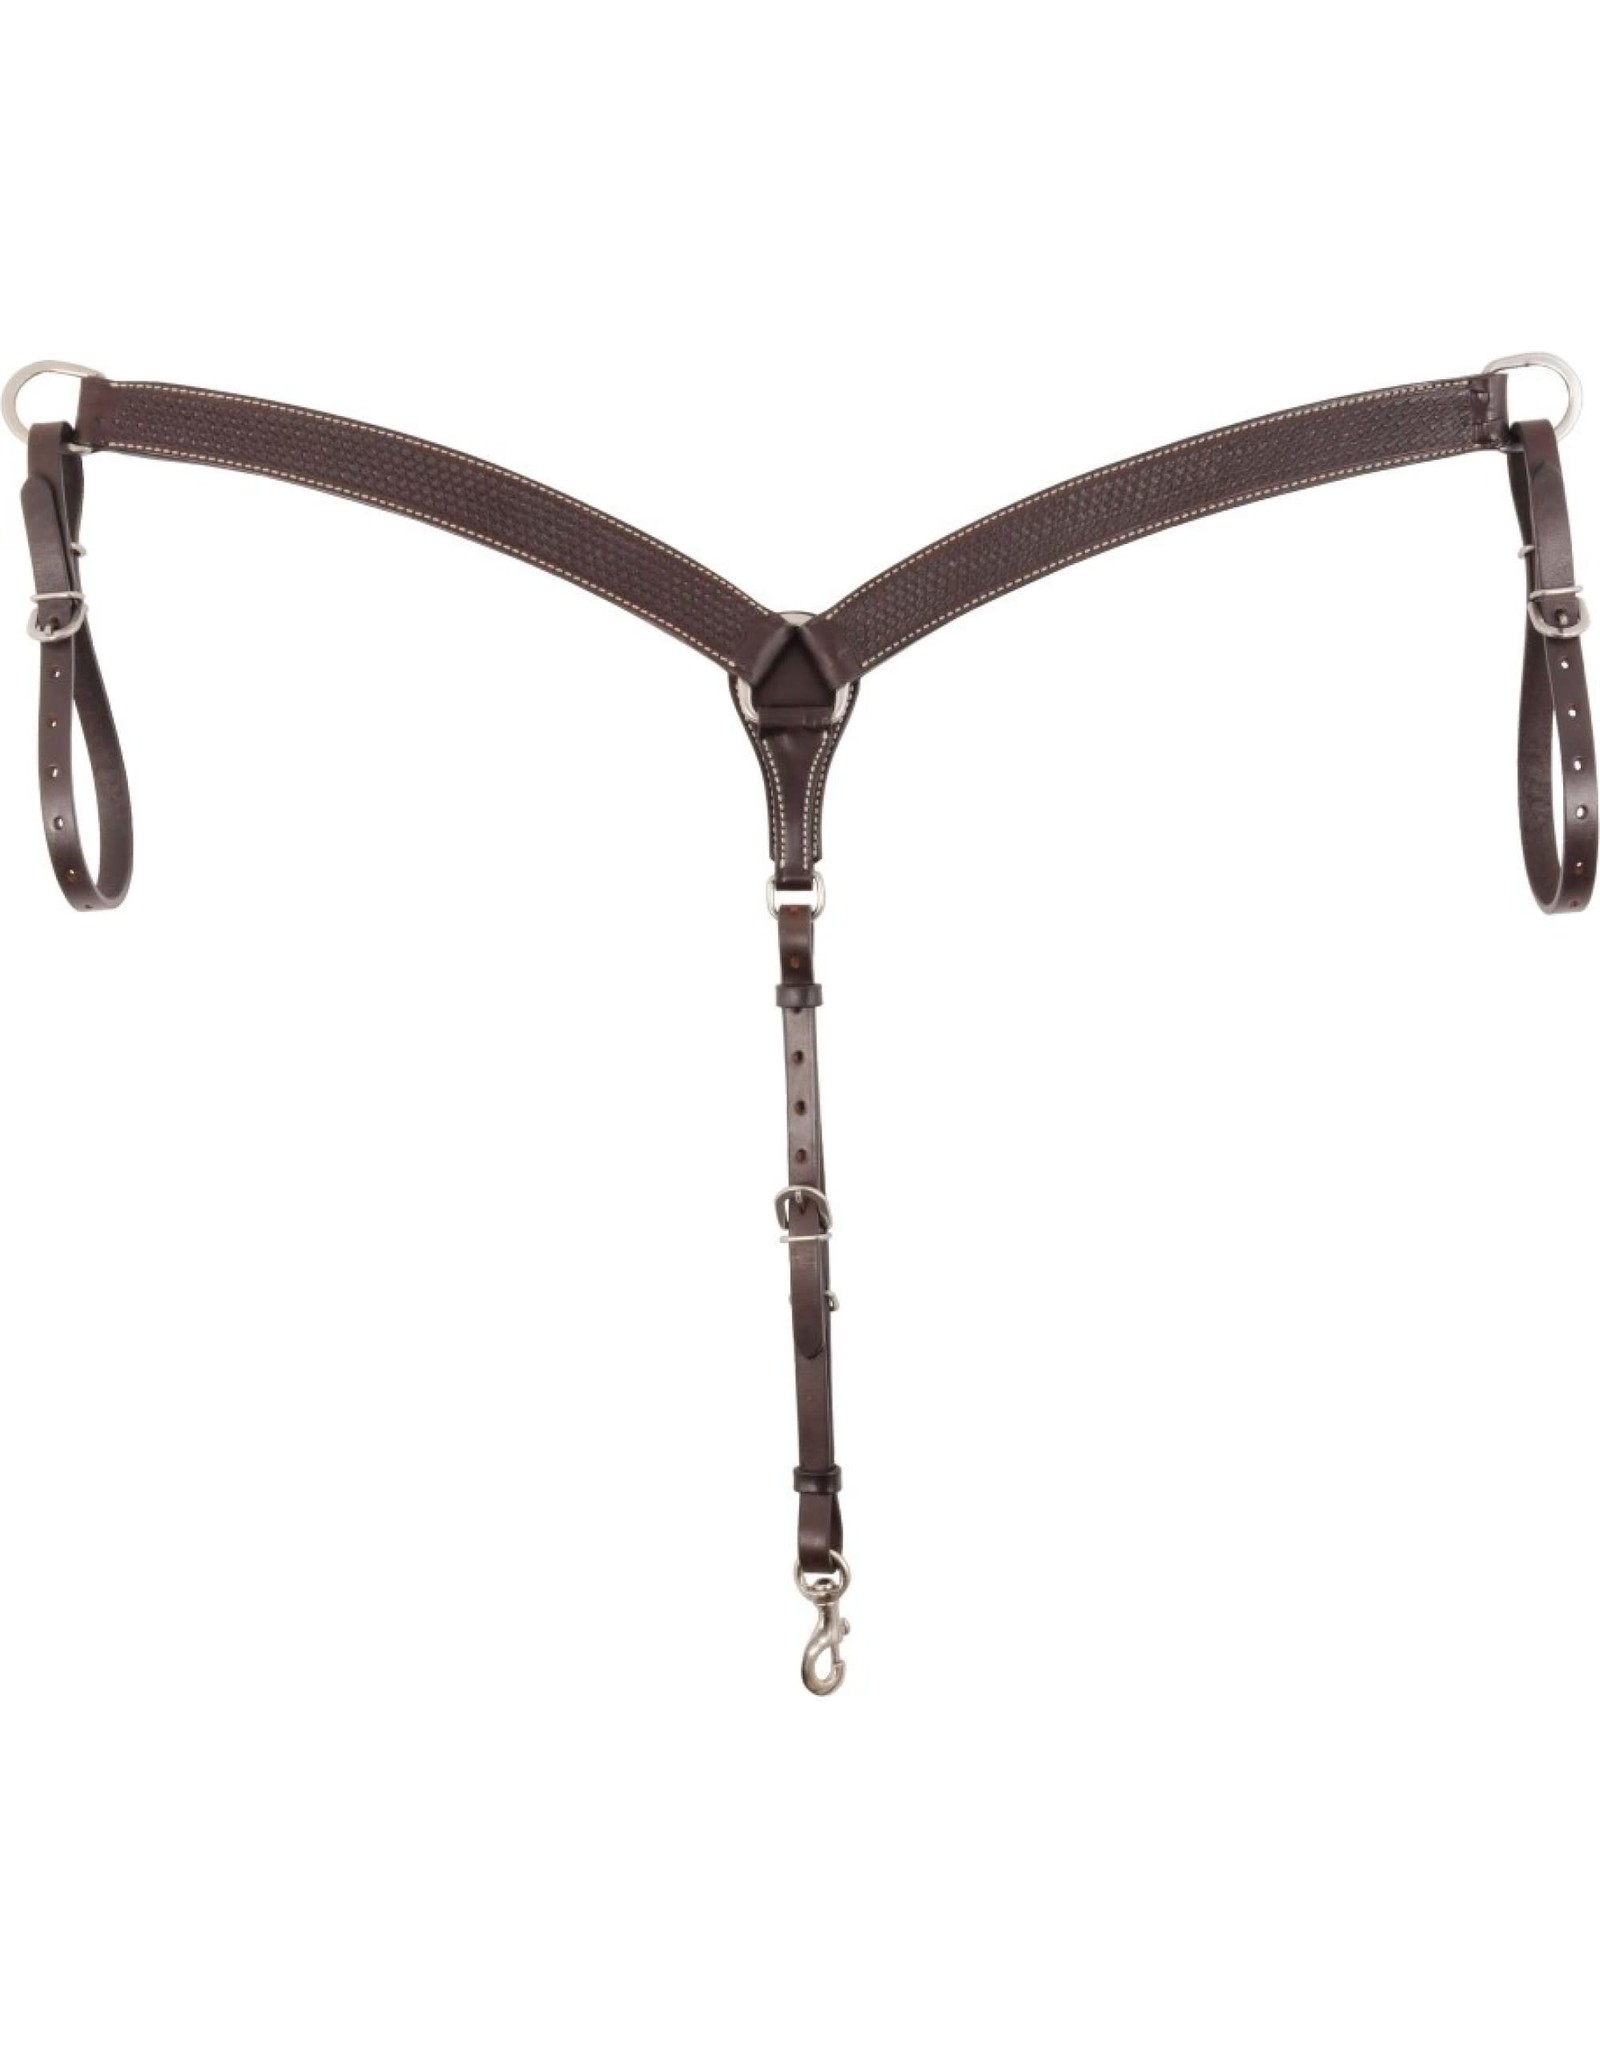 Country Legend Breastcollar w/ Basket Tooling